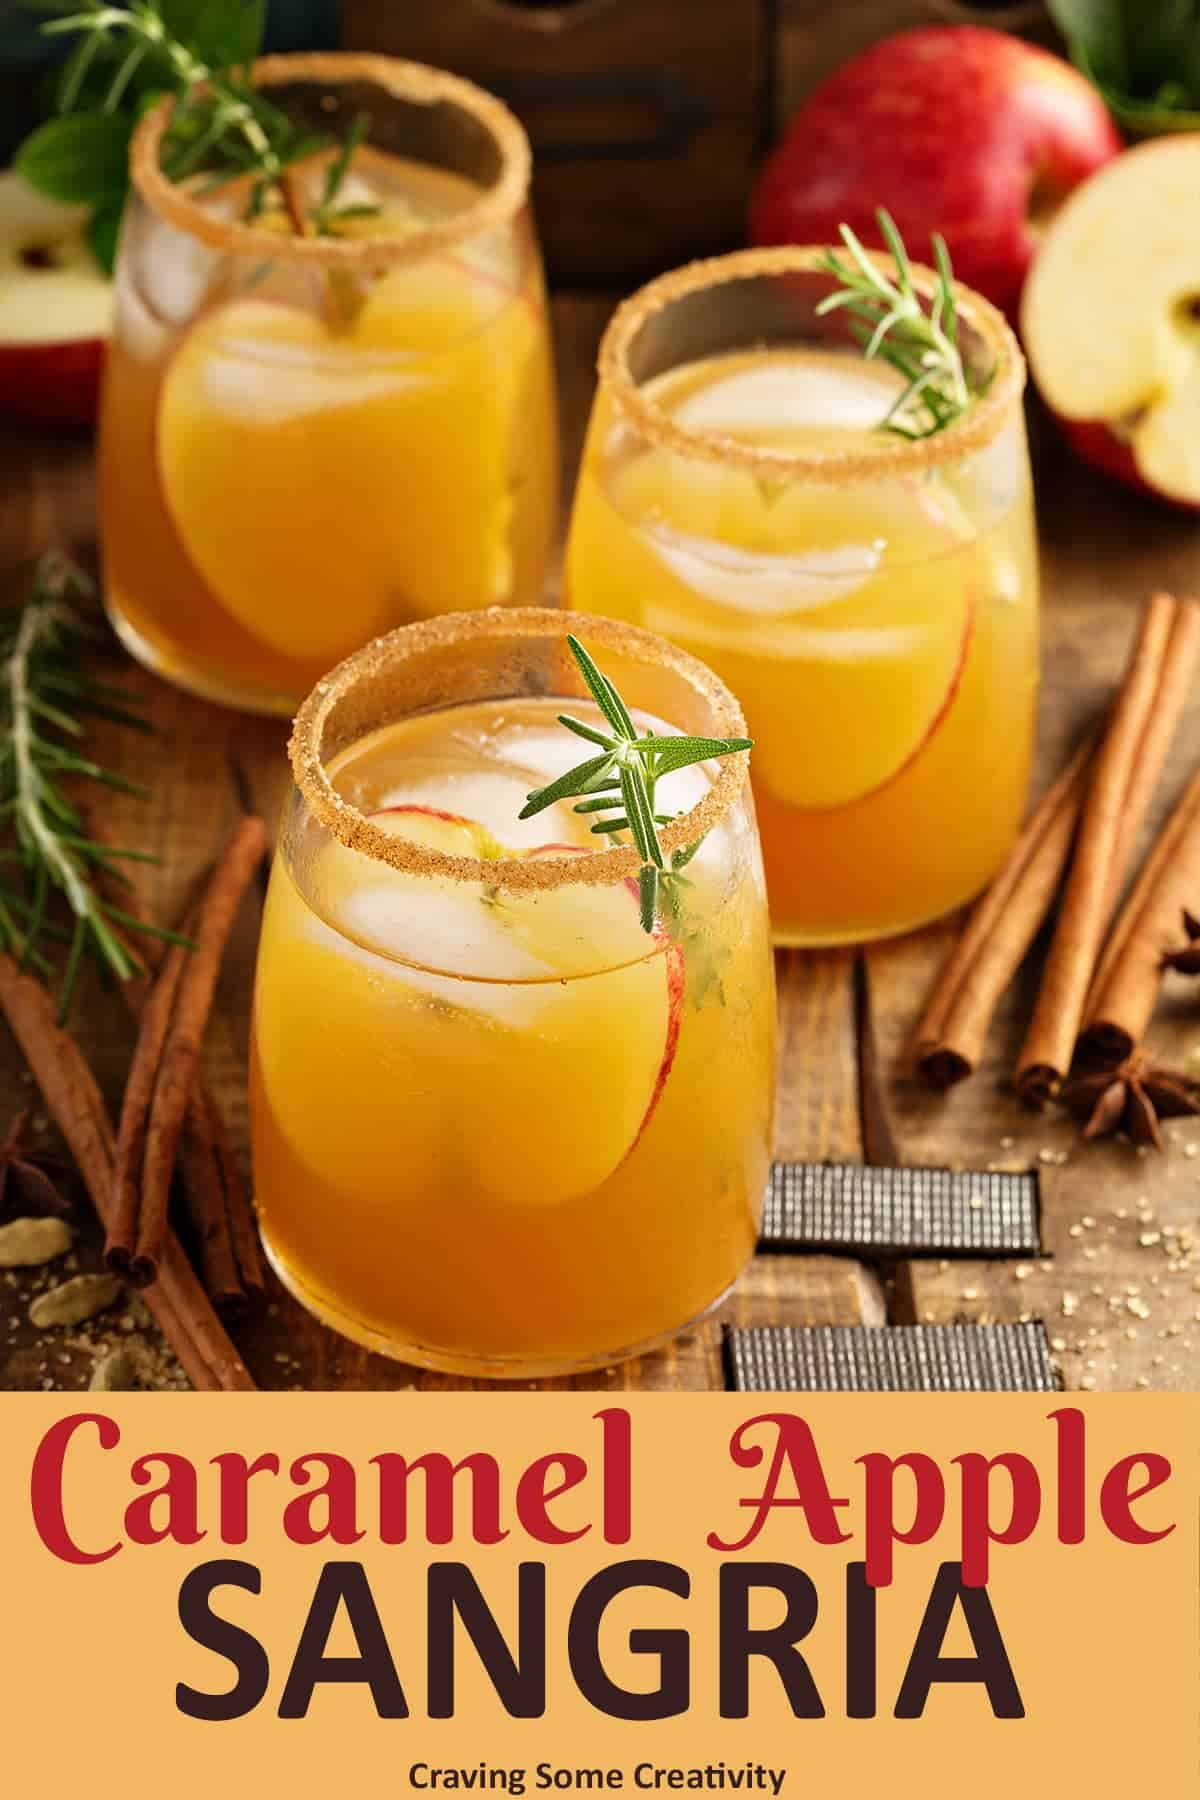 Glasses of Carmel Apple Sangria for Fall Cocktail garnished with Rosemary